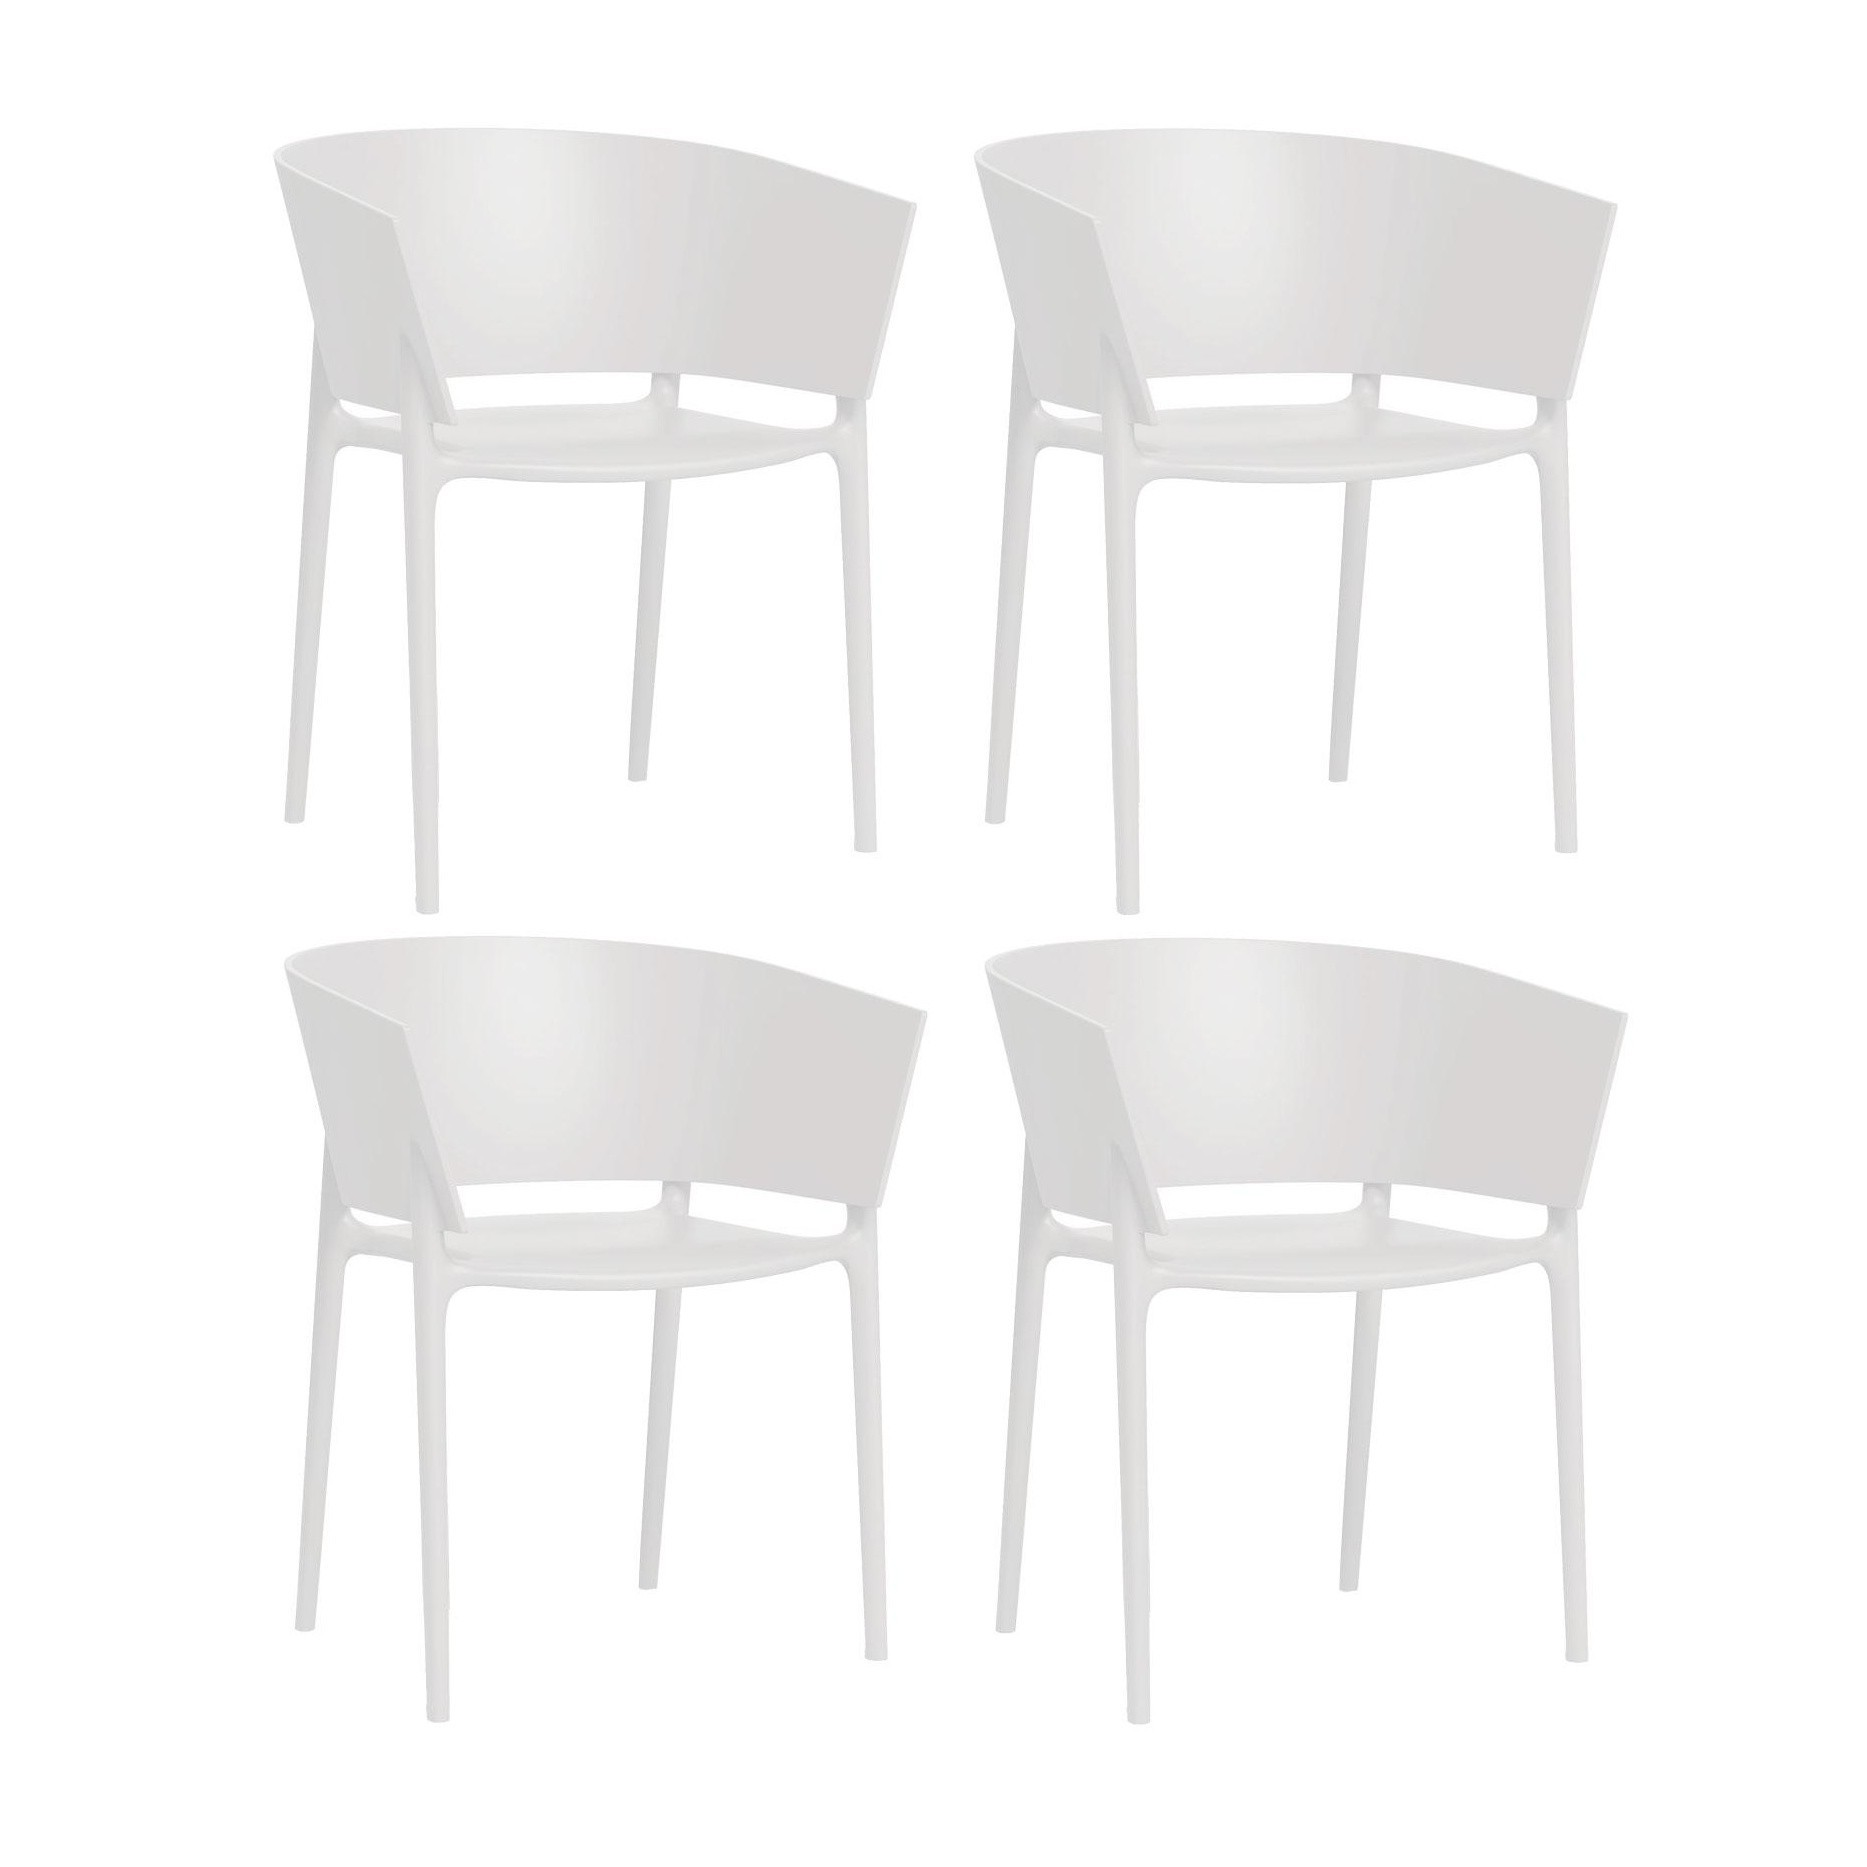 Vondom africa armchair 4 piece set white matt h x w